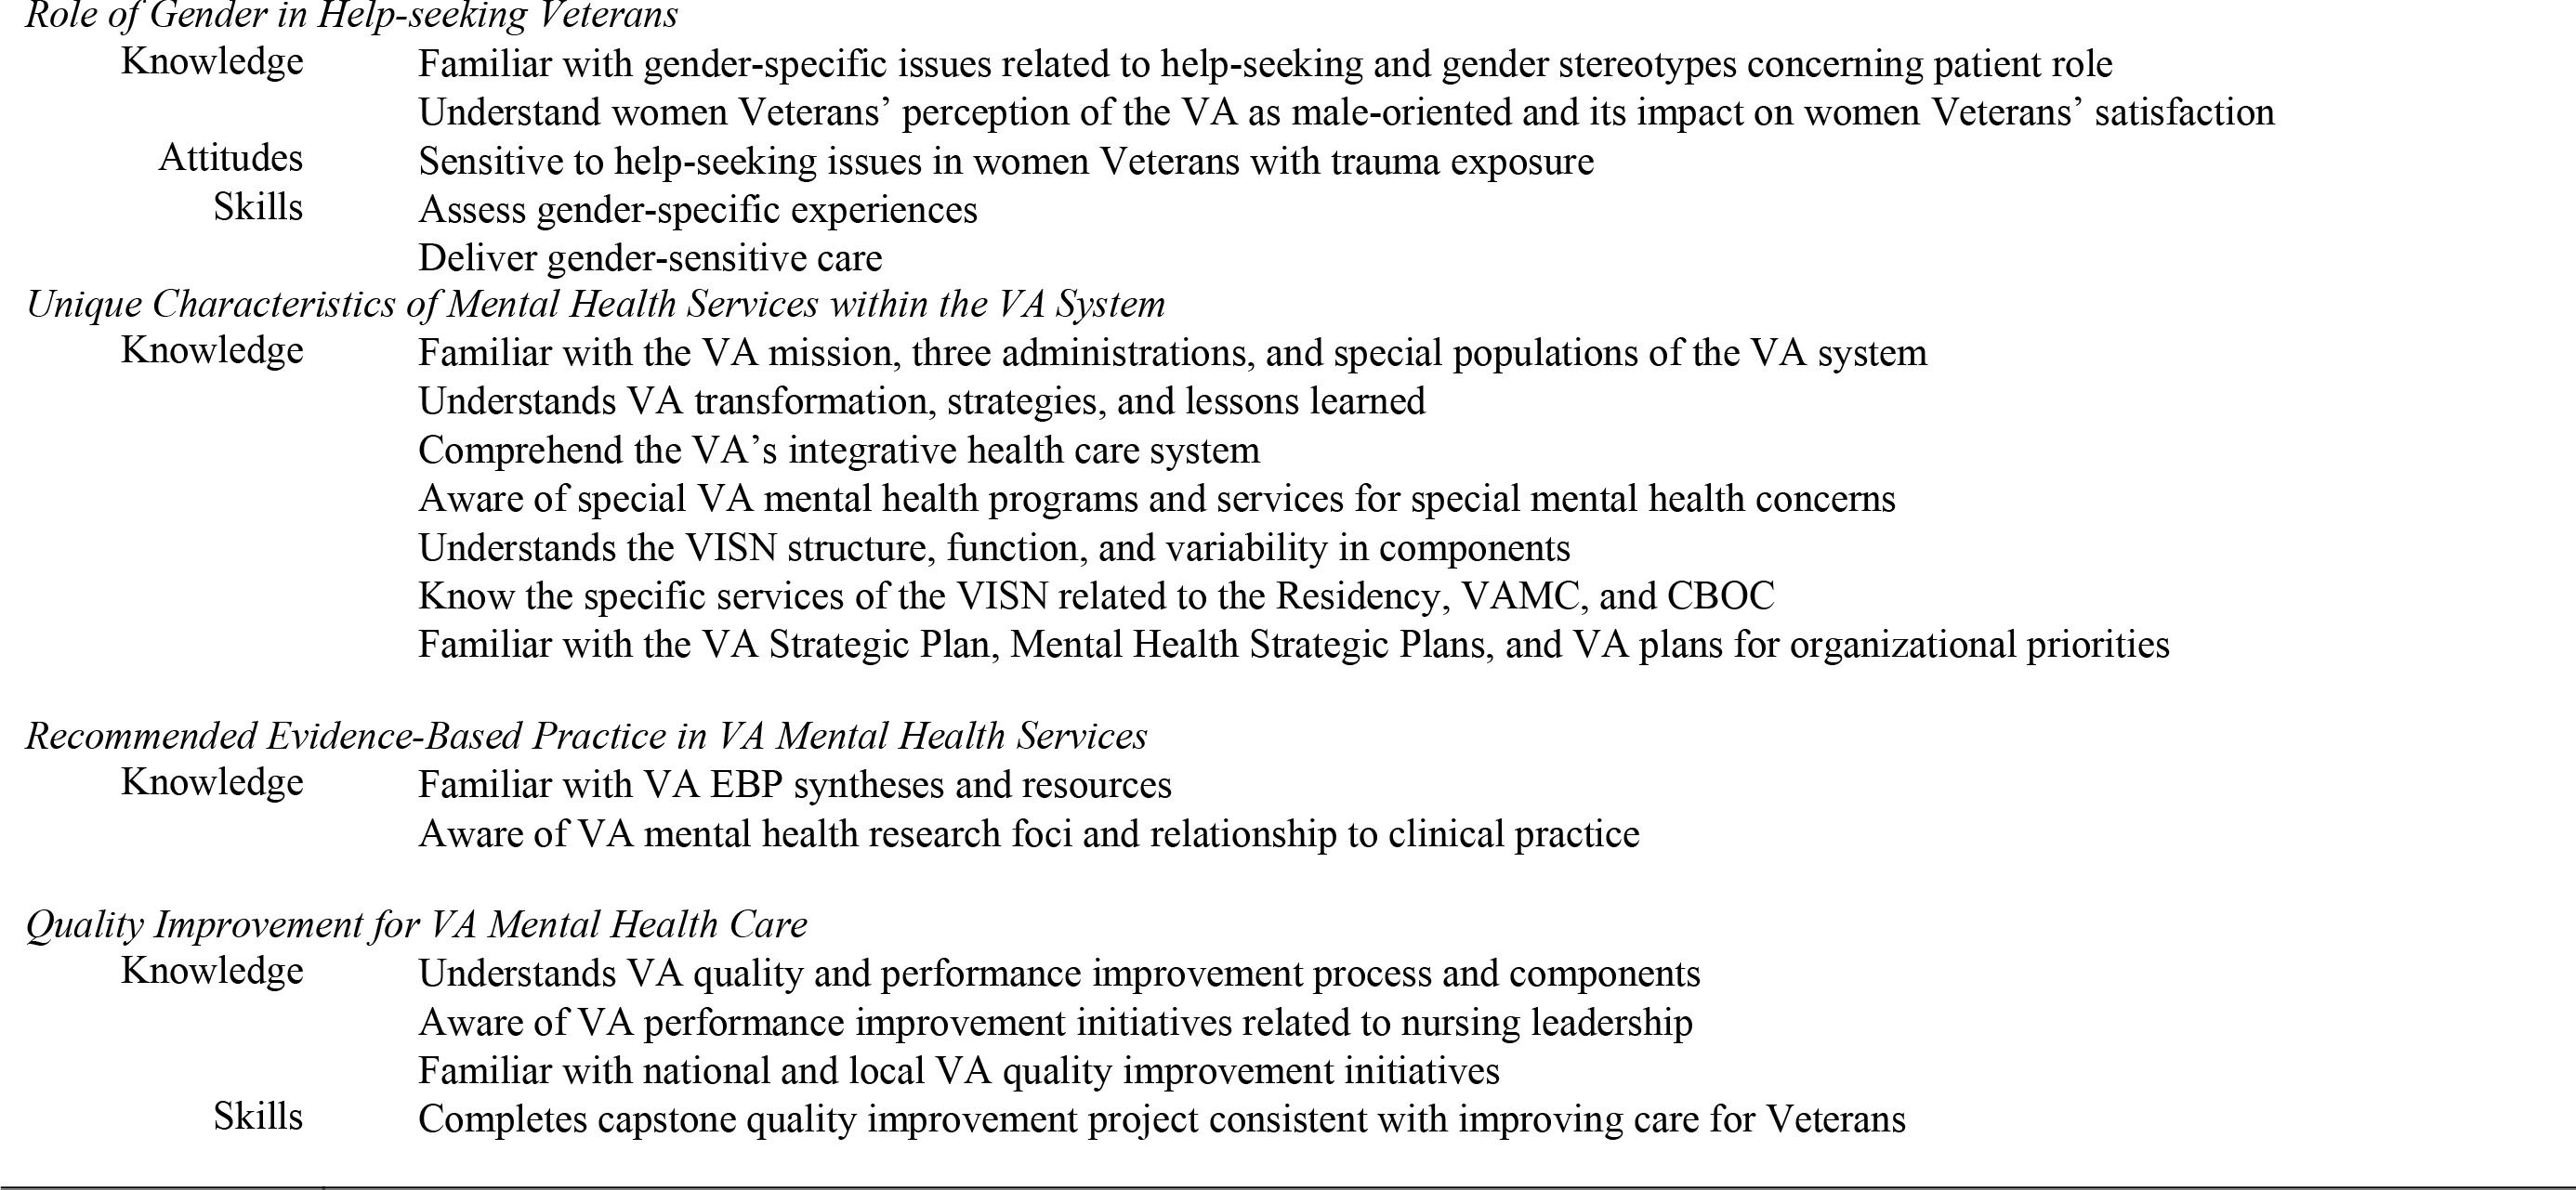 development of veteran centric competency domains for psychiatric